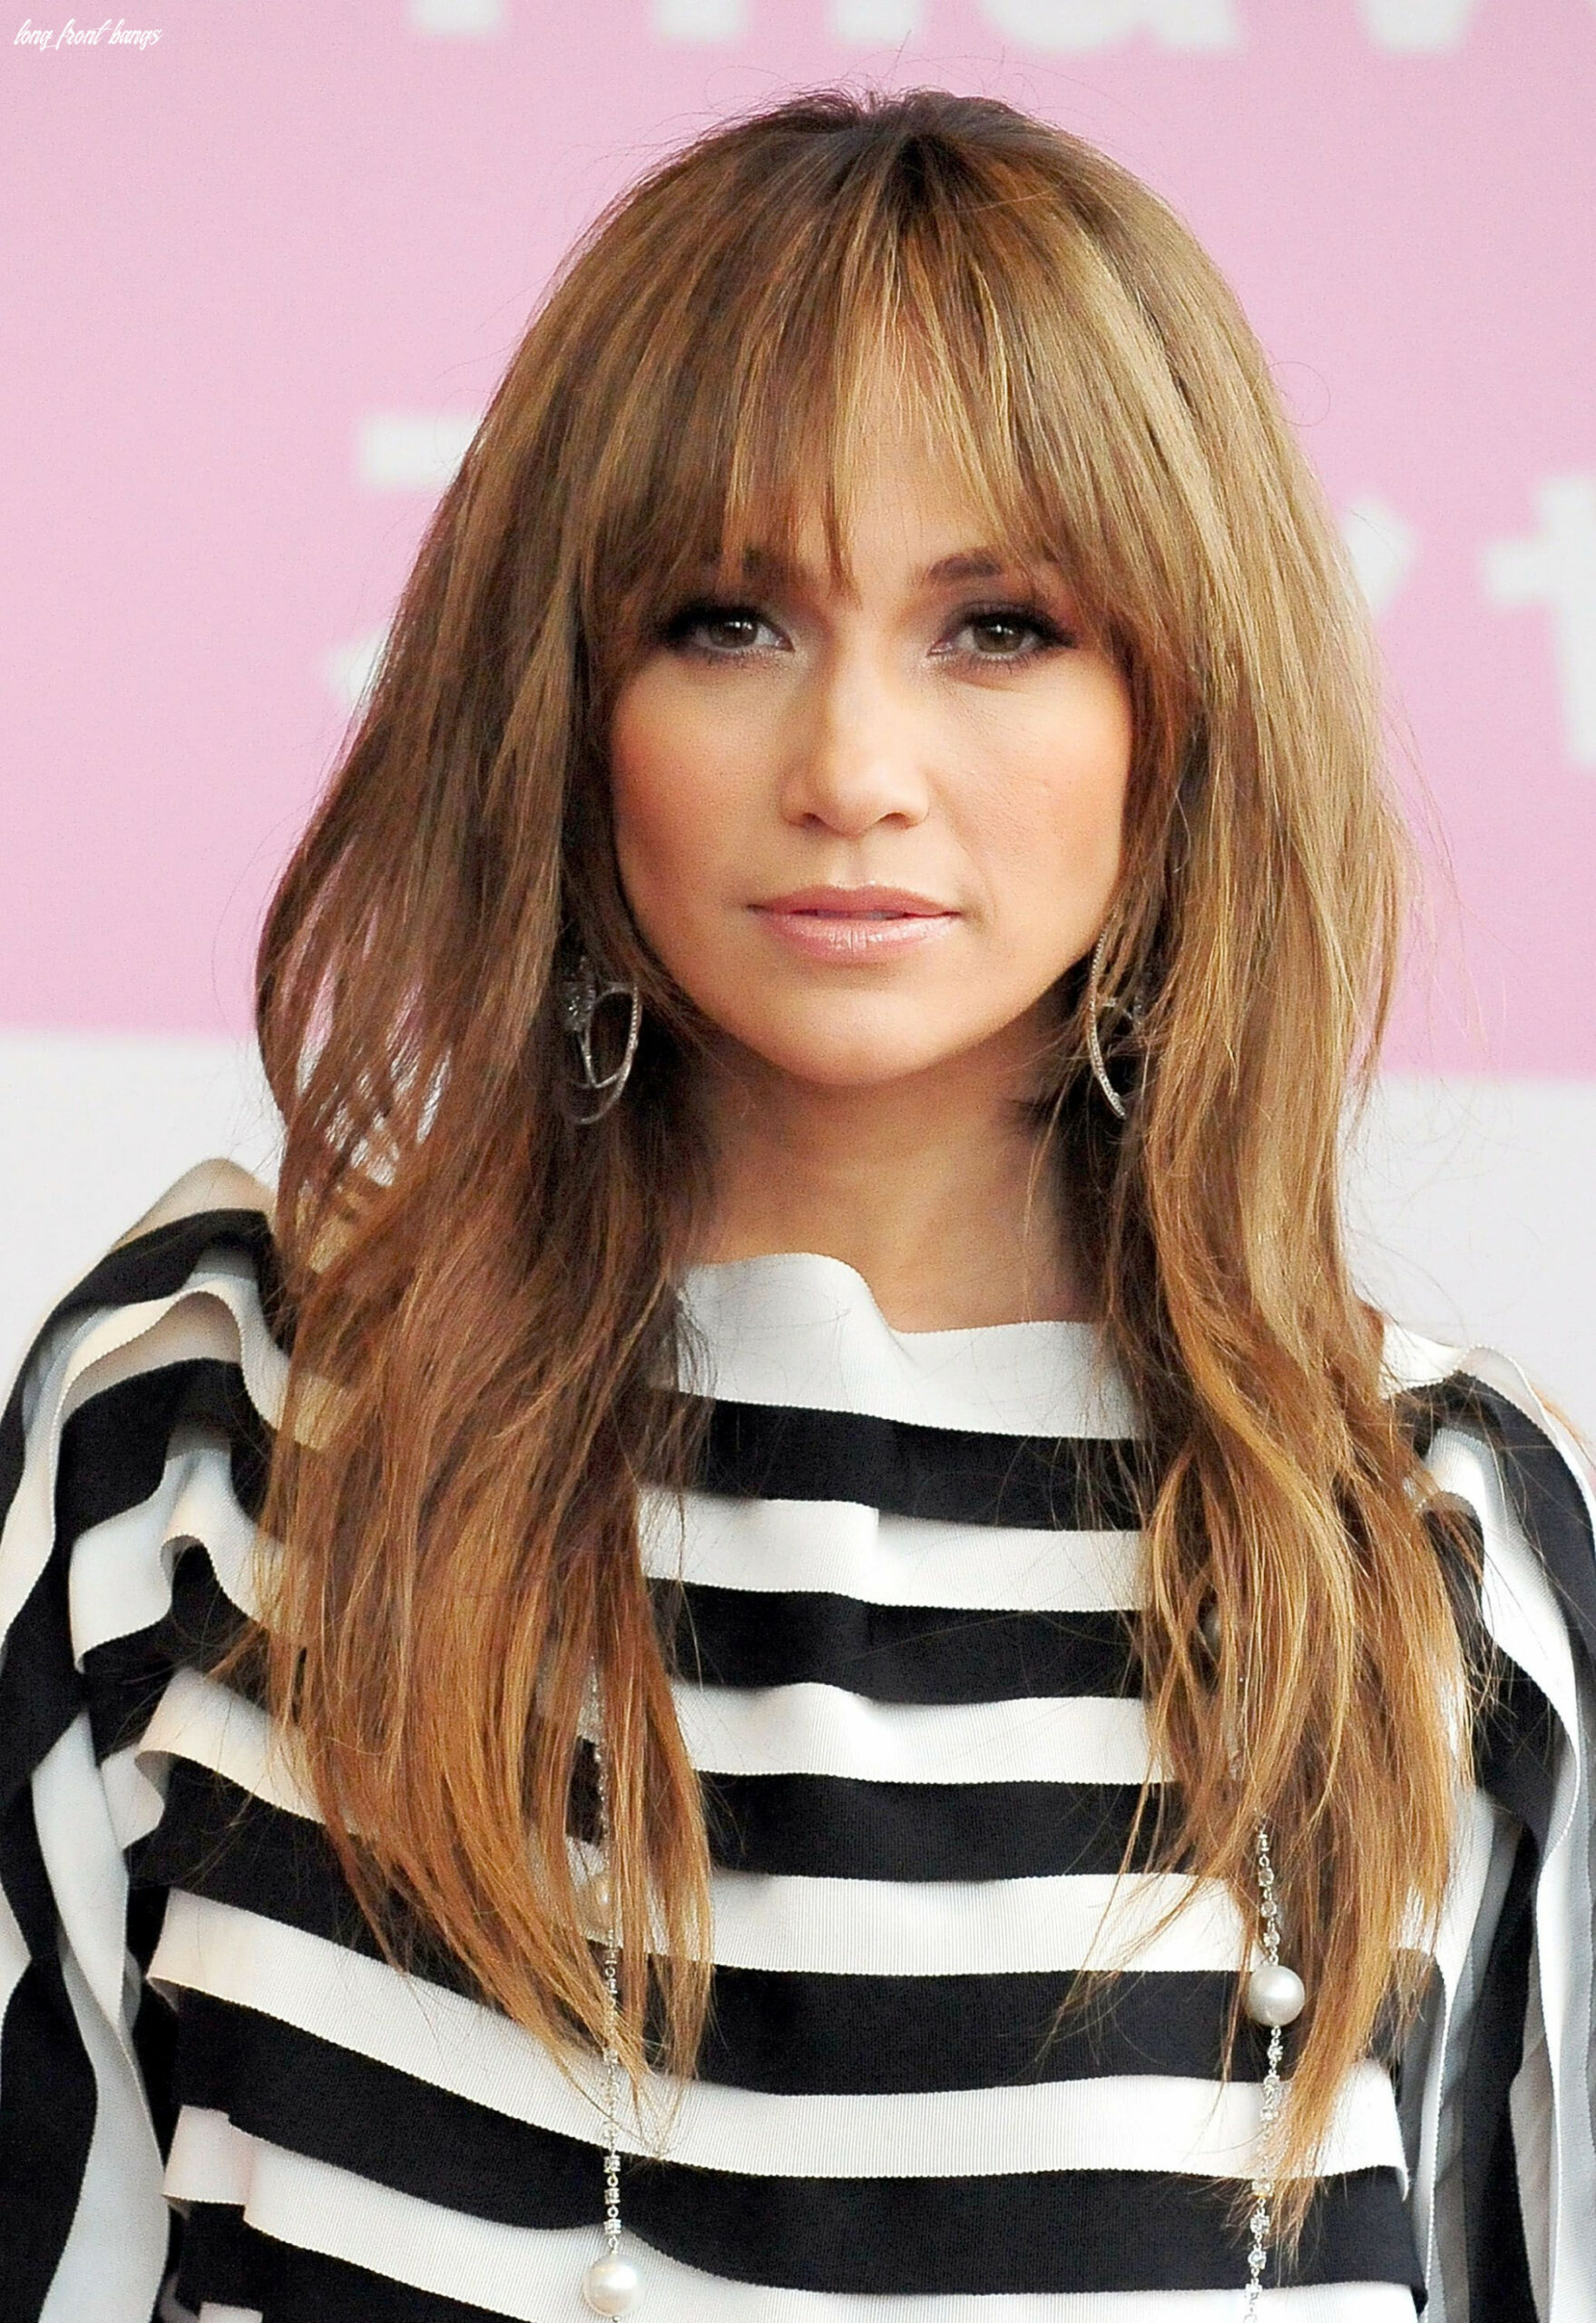 8 Best Hairstyles With Bangs - Photos of Celebrity Haircuts With ...